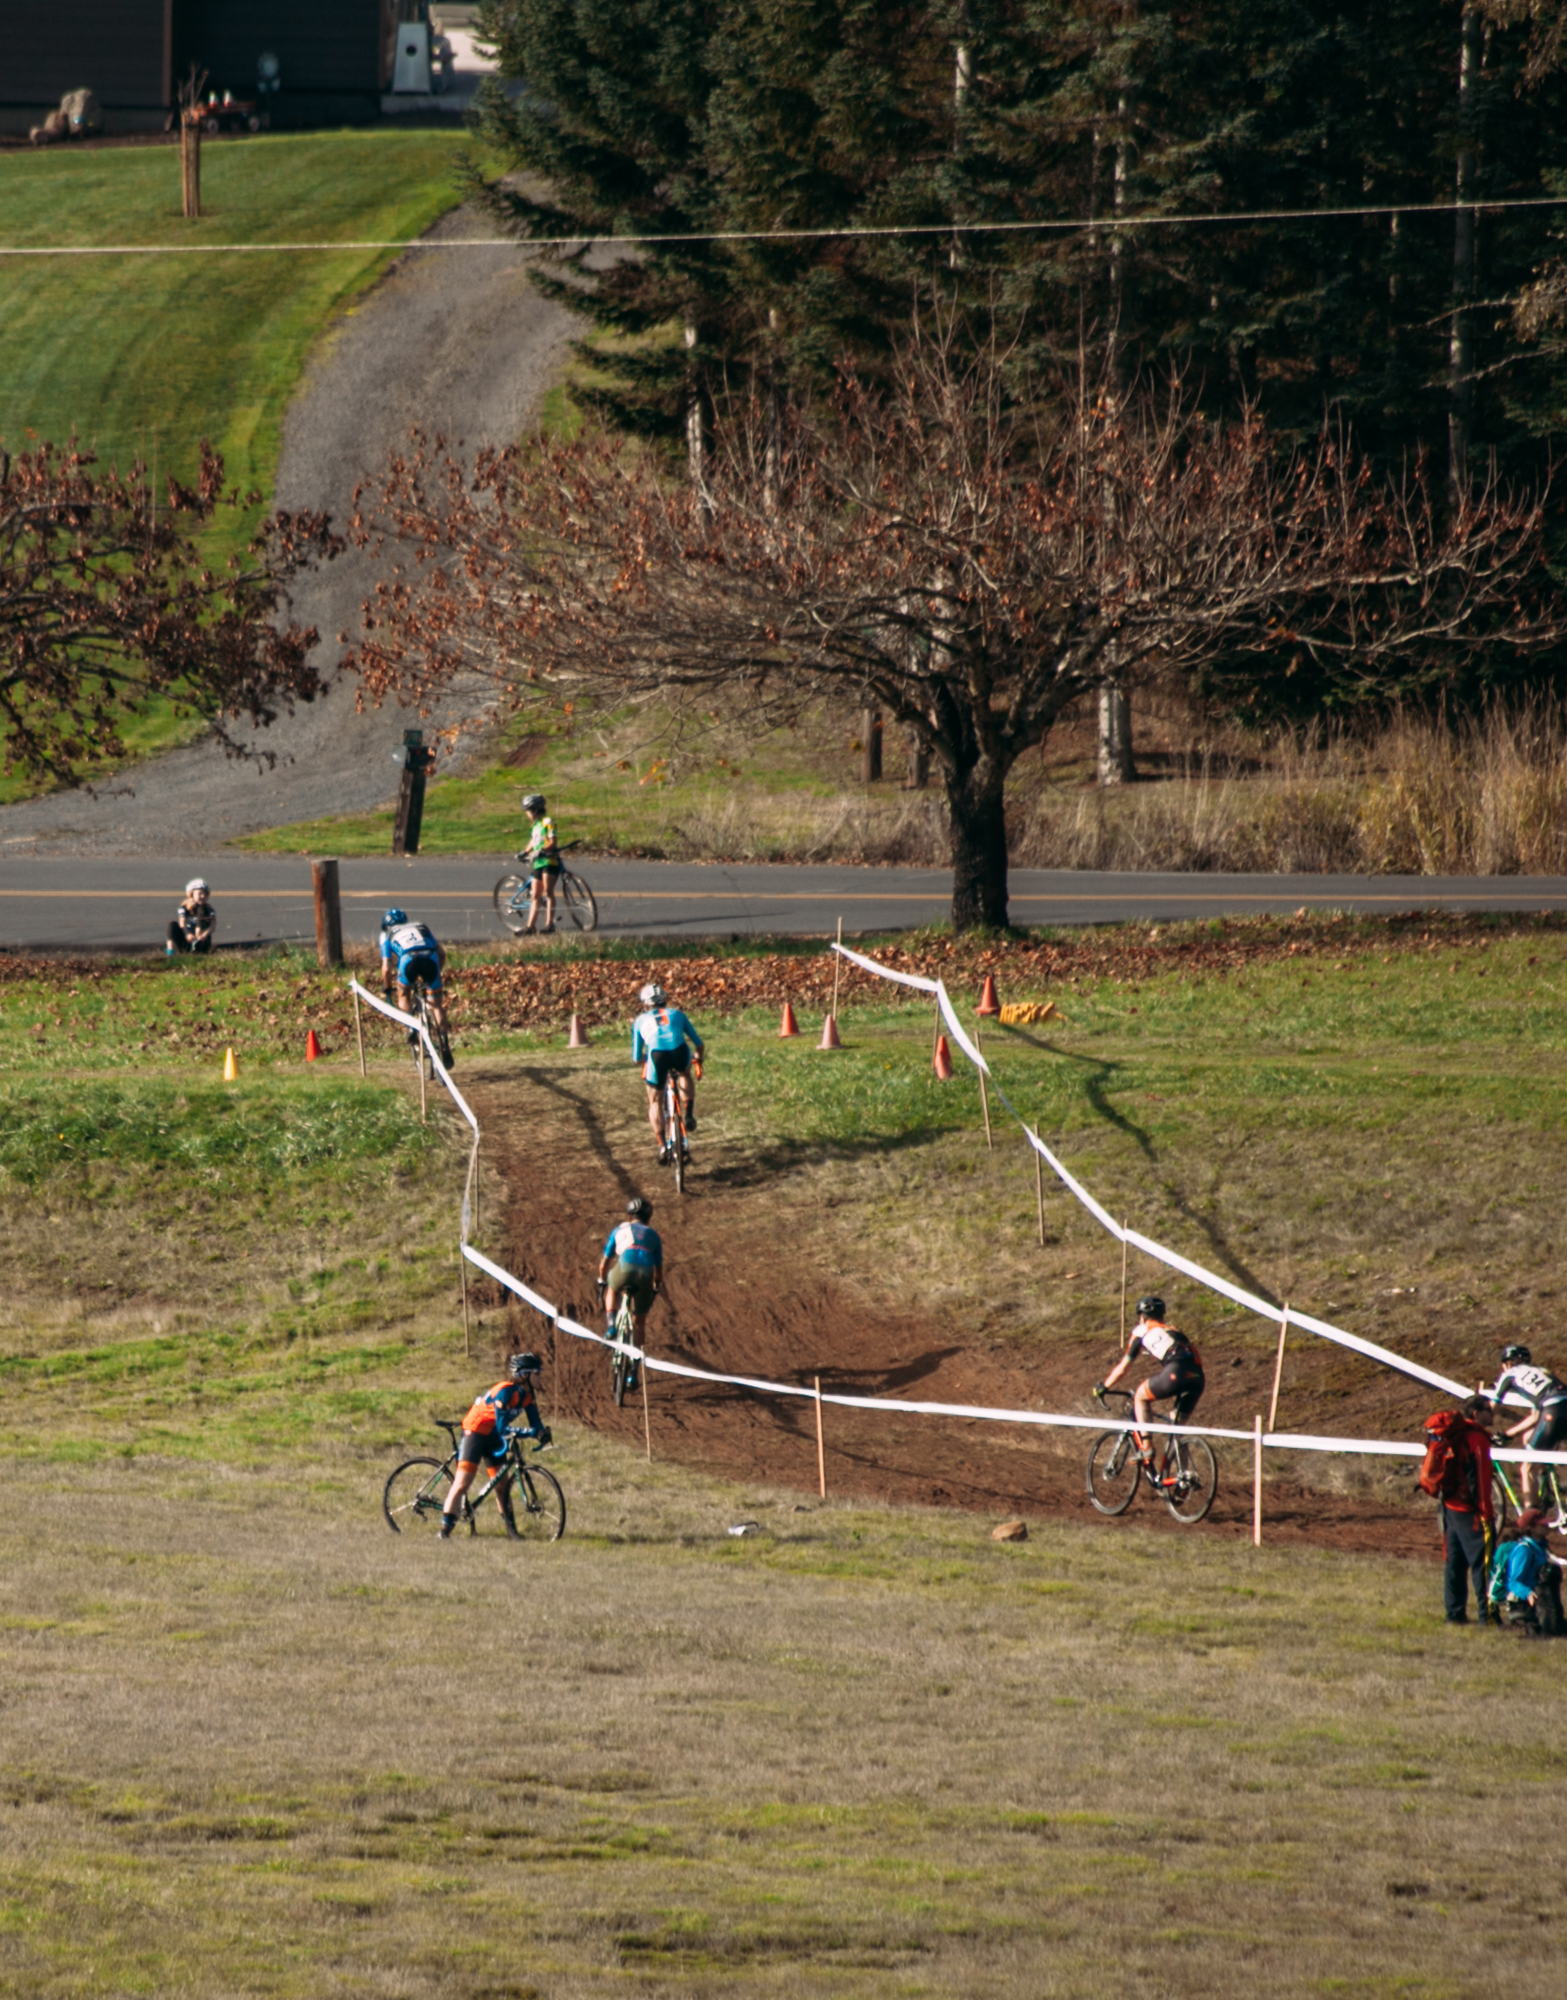 Cyclocross18_CCCX_RainierHS-29-mettlecycling.jpg